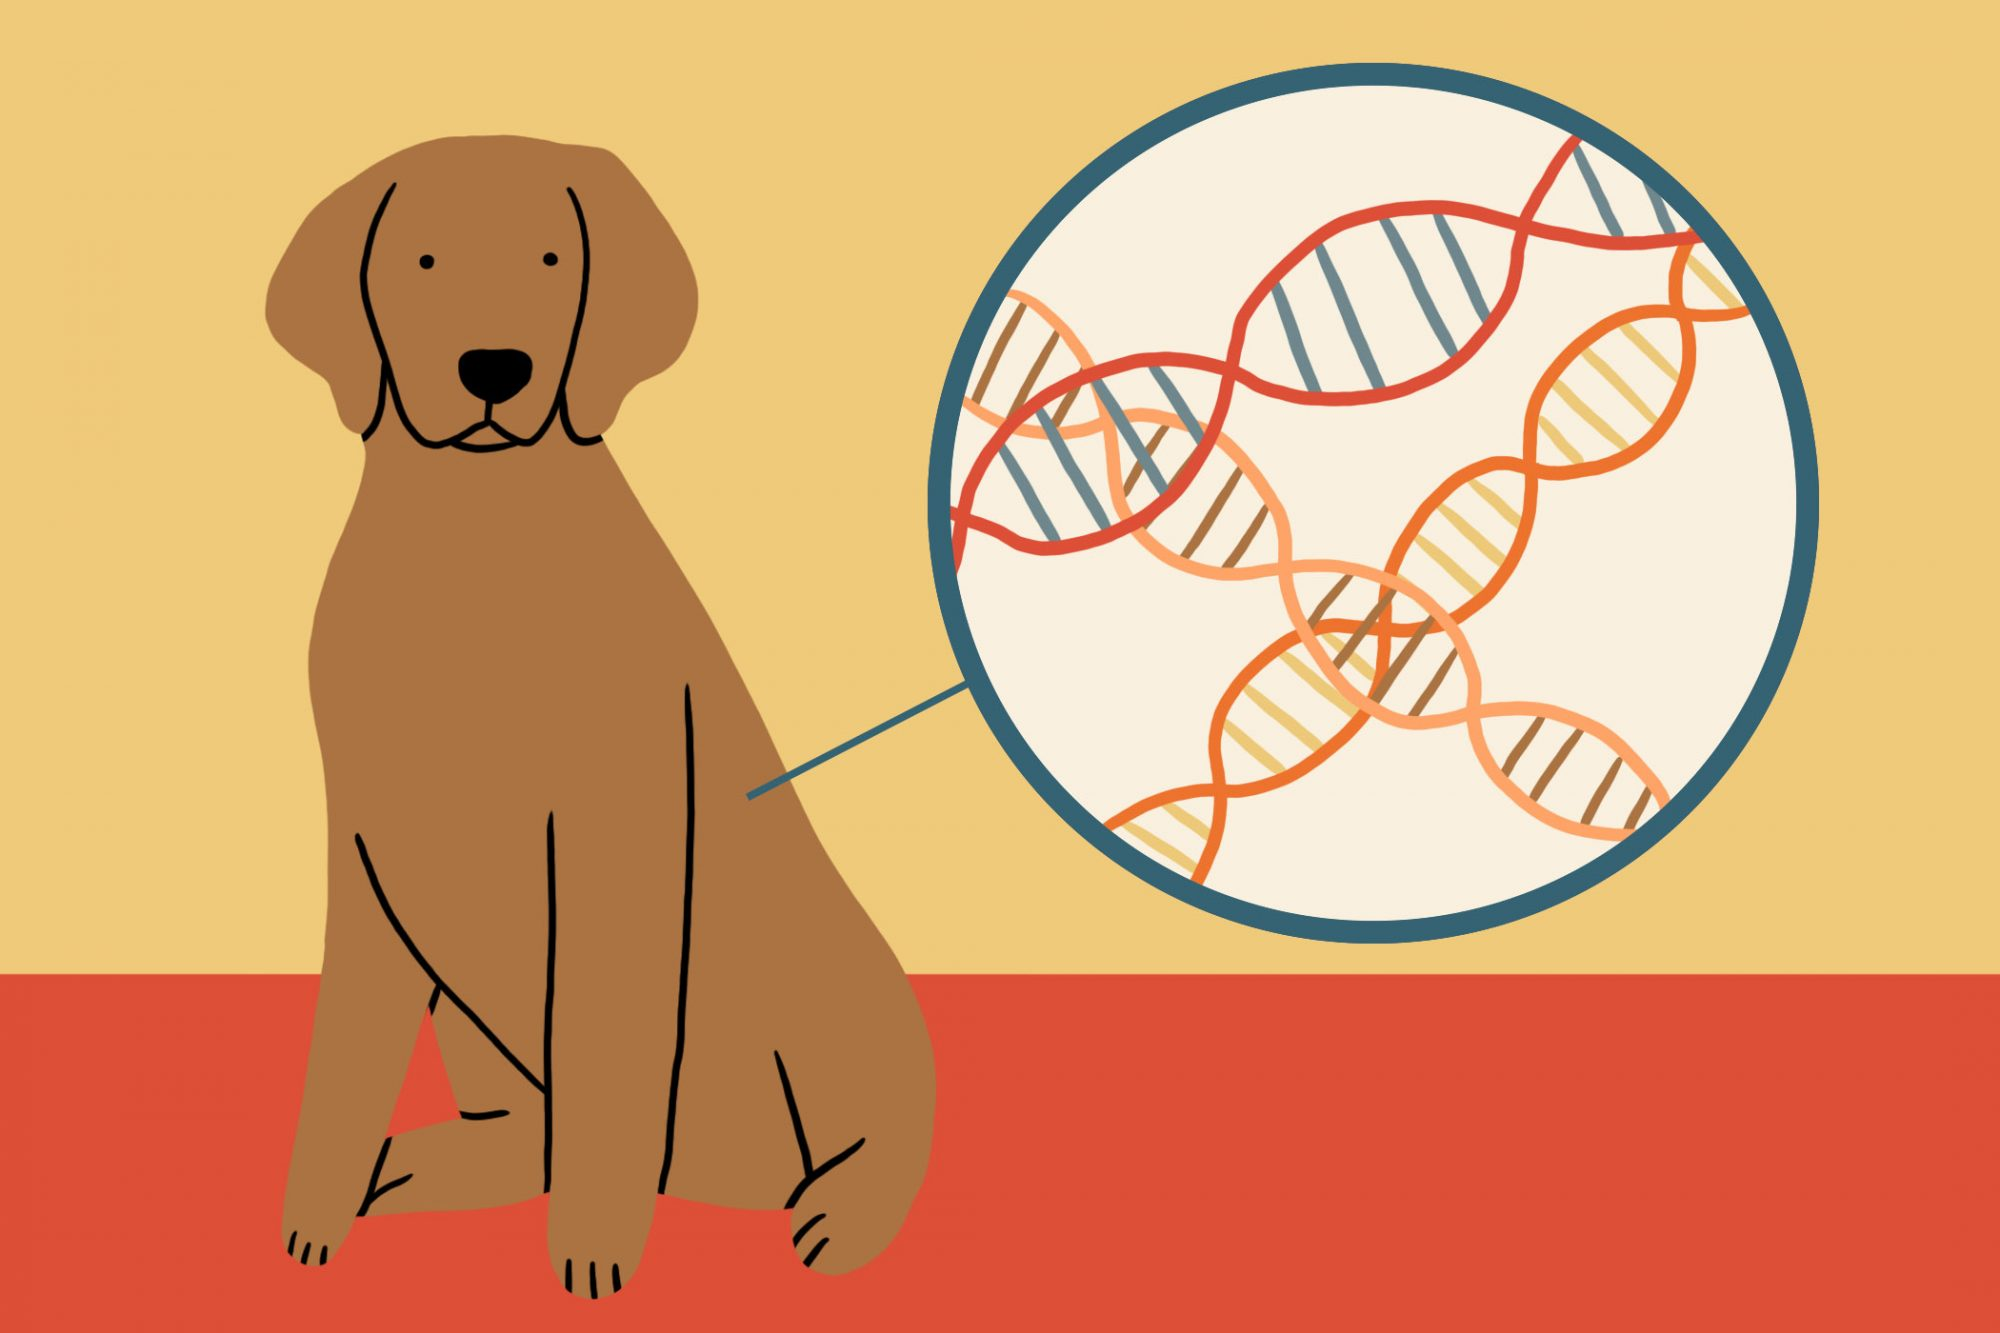 illustration of dog with DNA helix